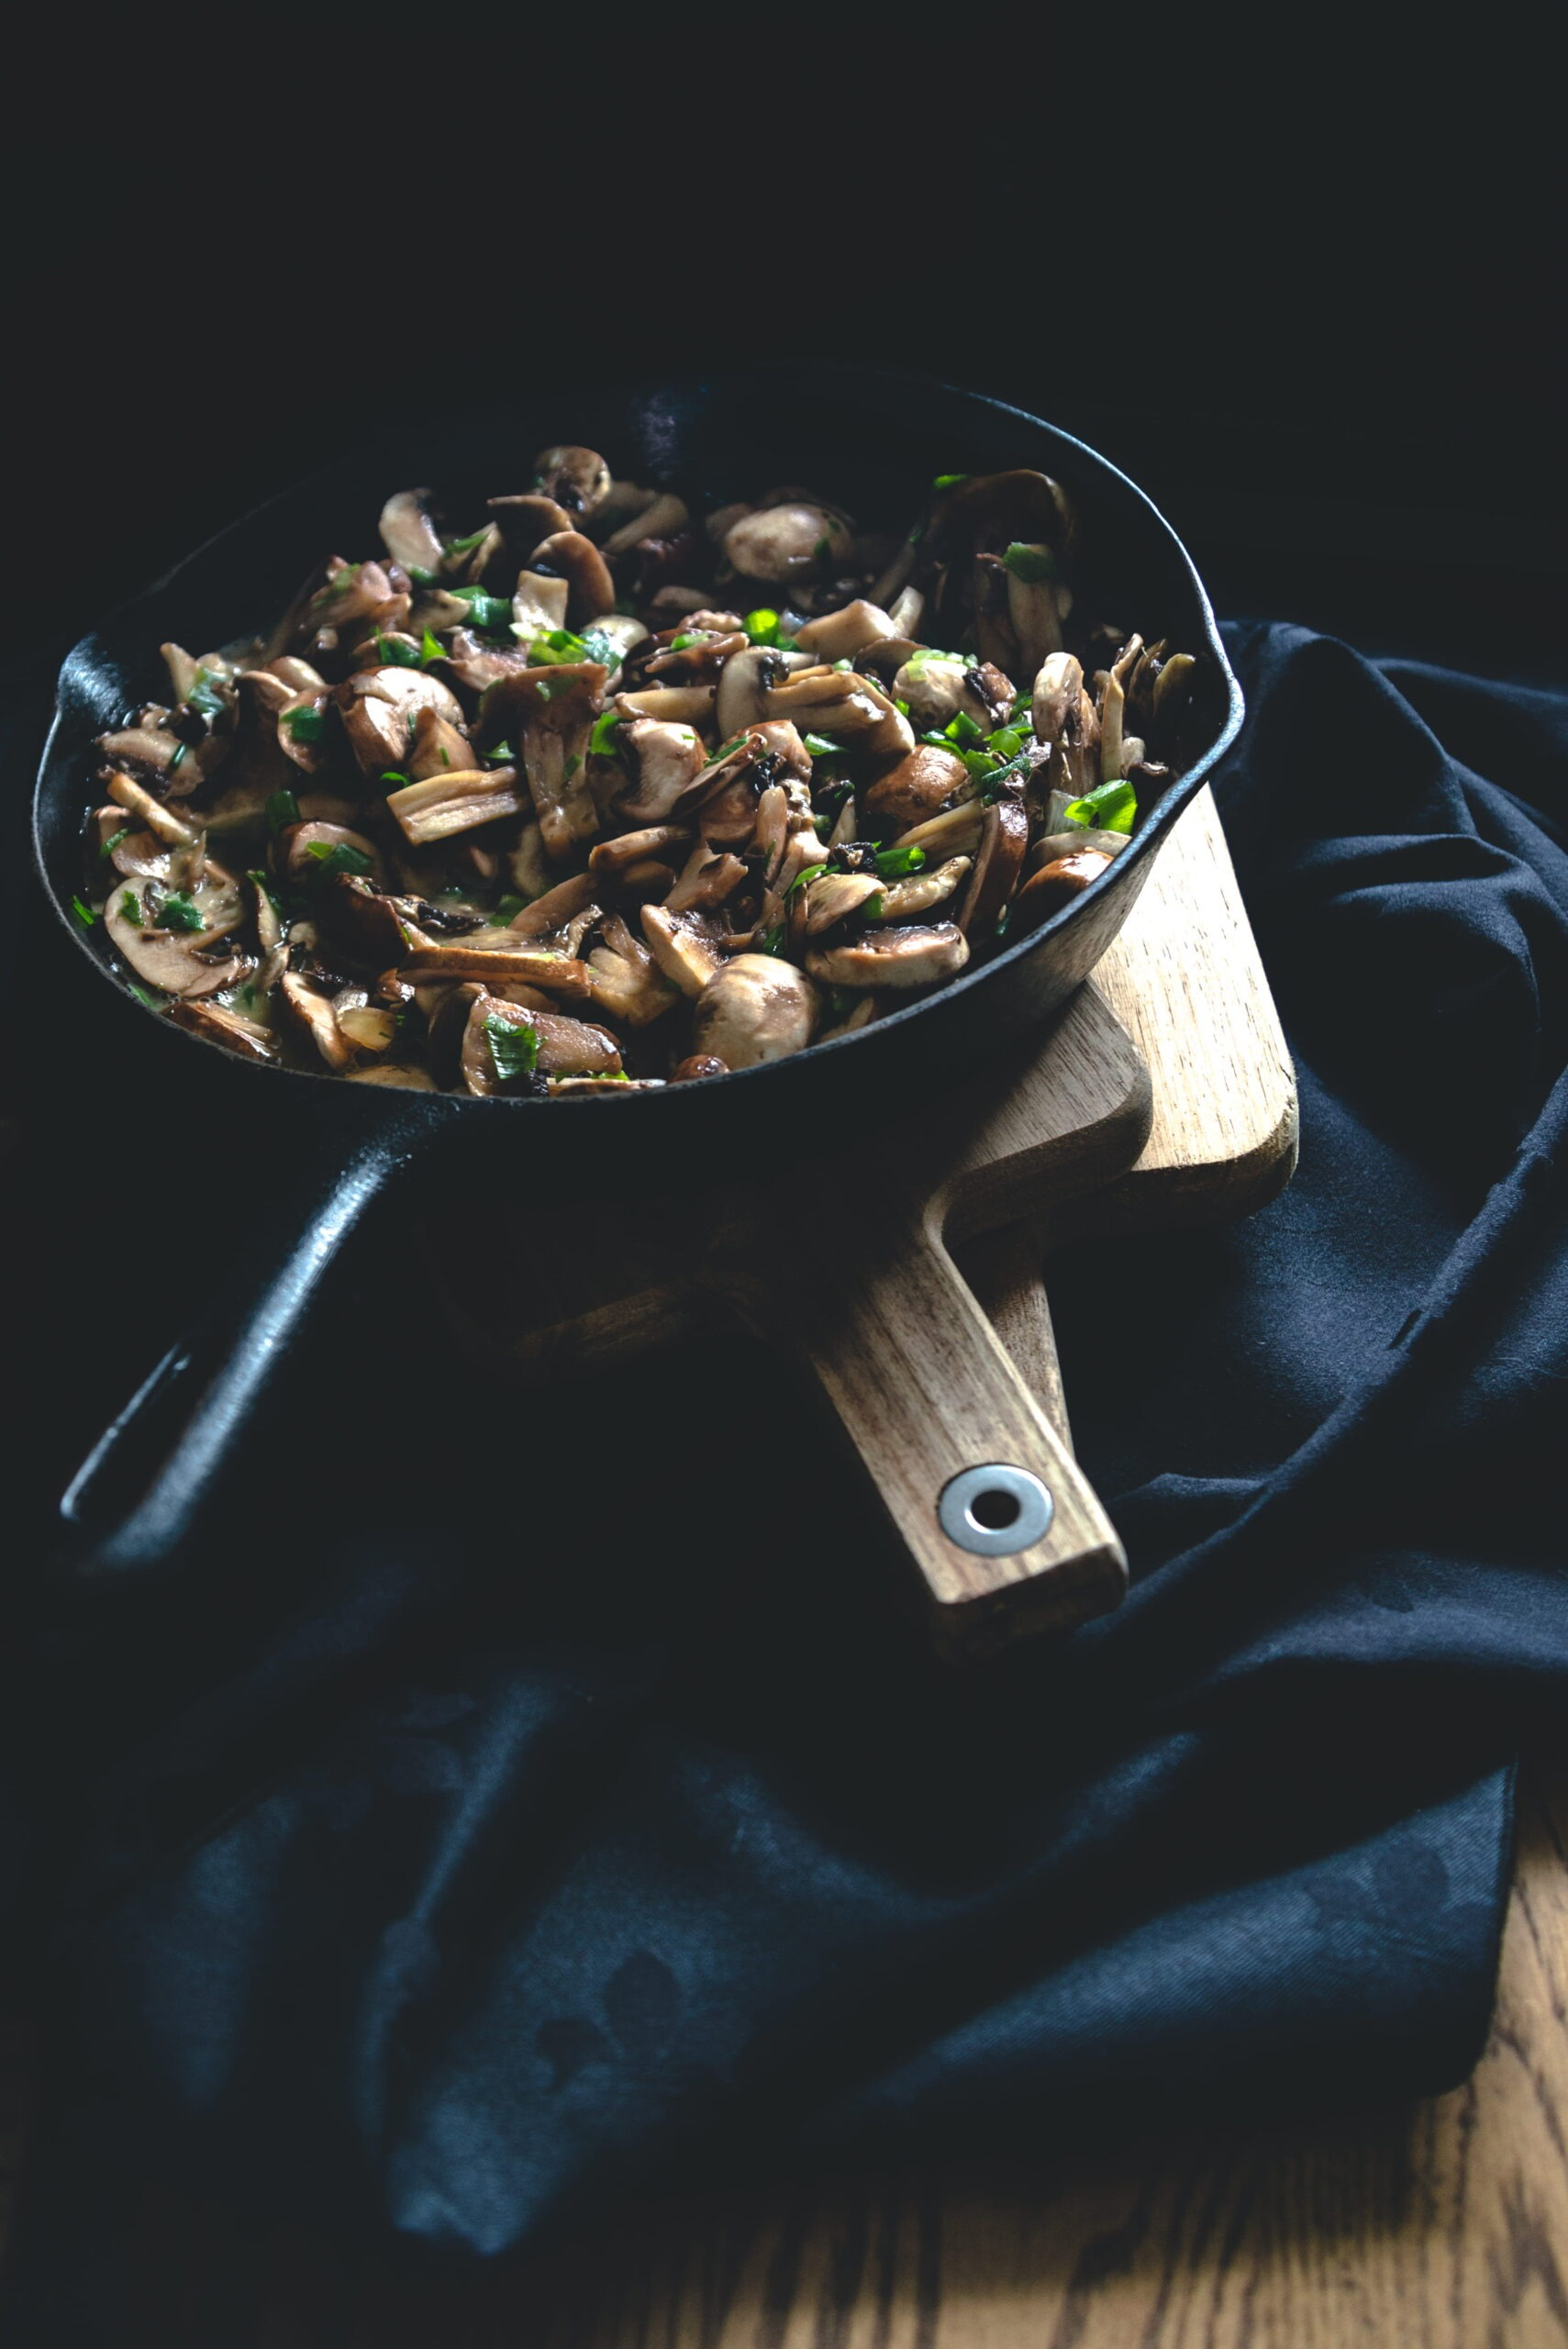 Sautée Mushrooms